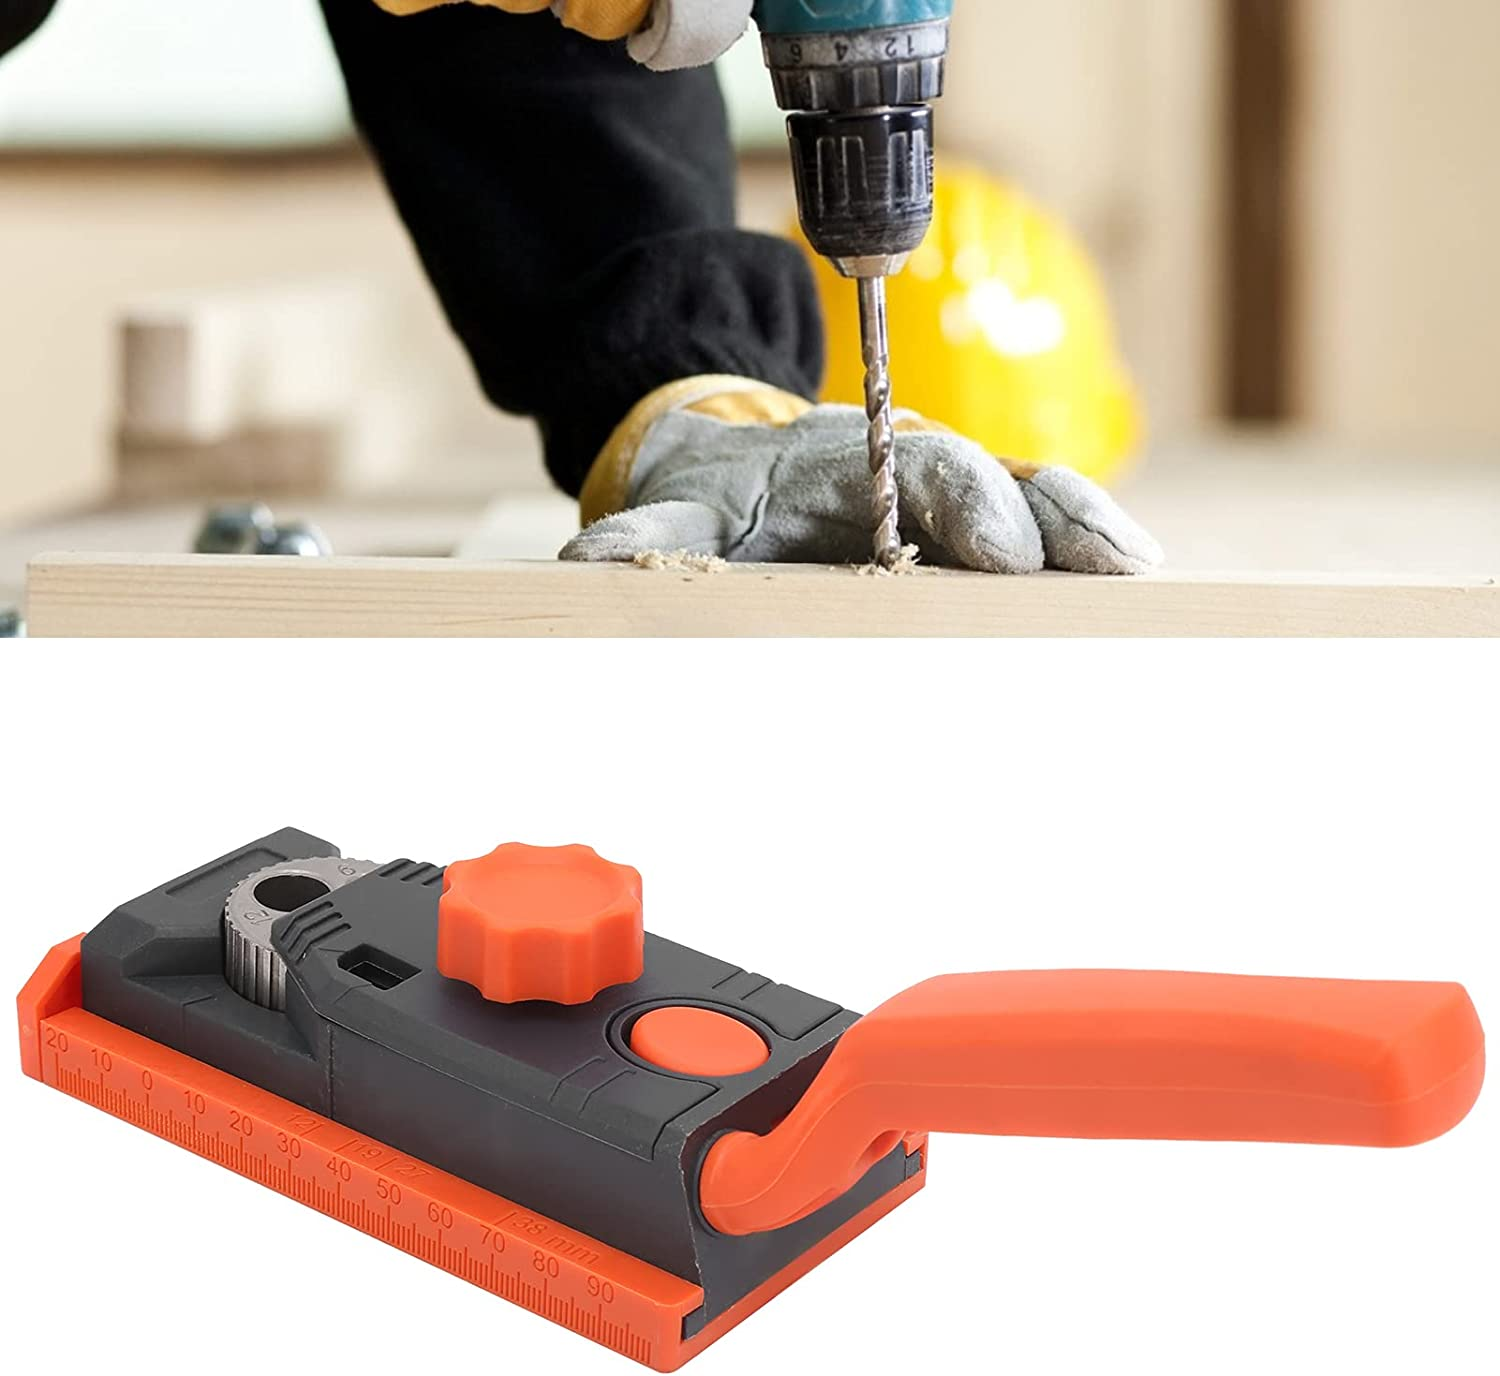 Woodworking Locator Puncher High Strength Duty Max 88% OFF trend rank Heavy Profession